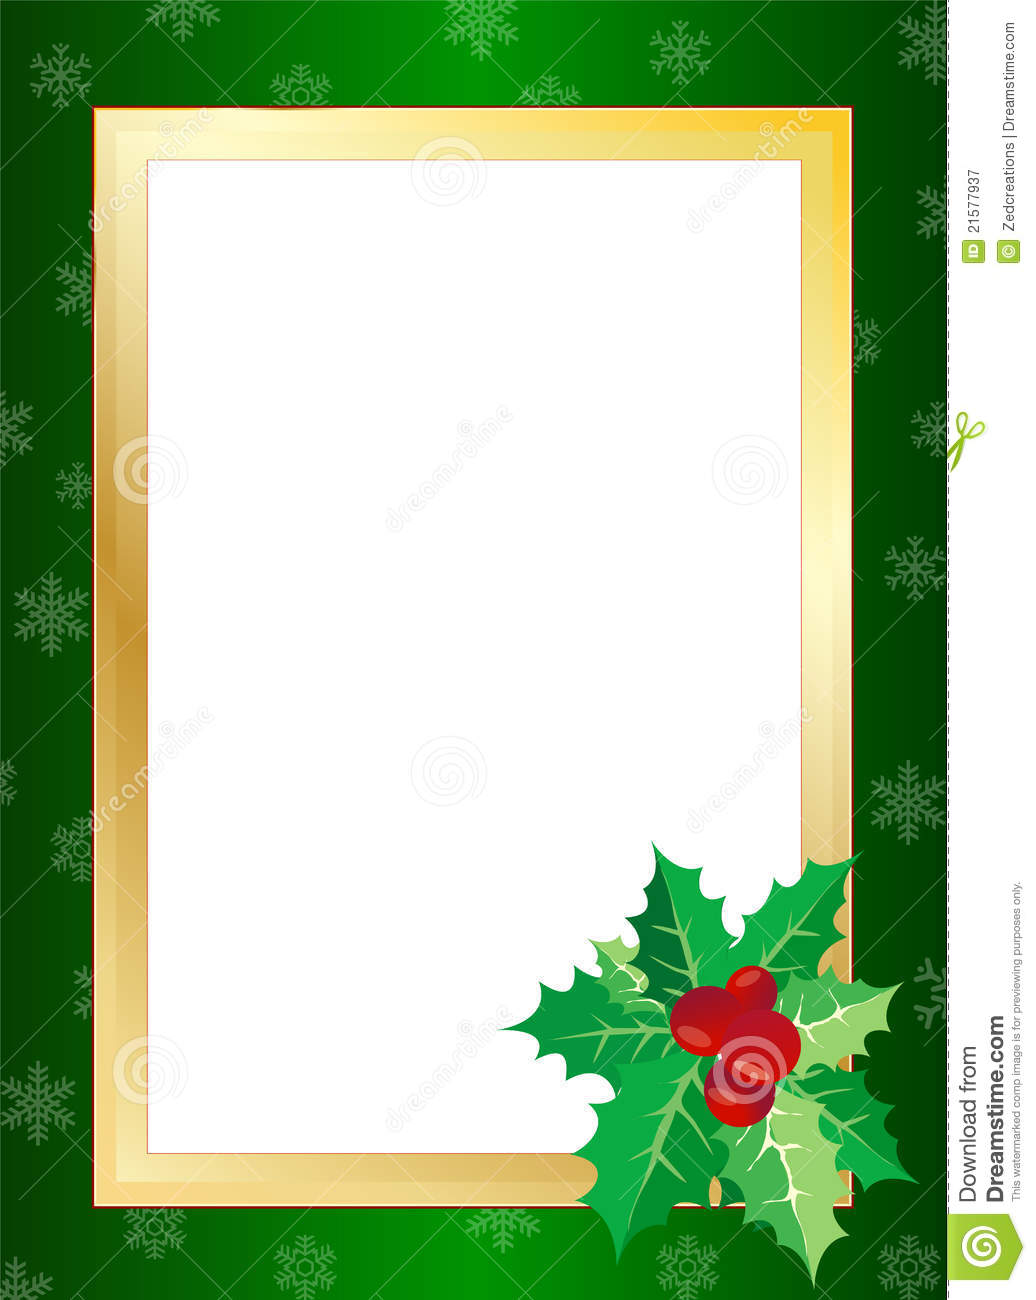 Download christmas borders free - ClipartFest clipart freeuse library